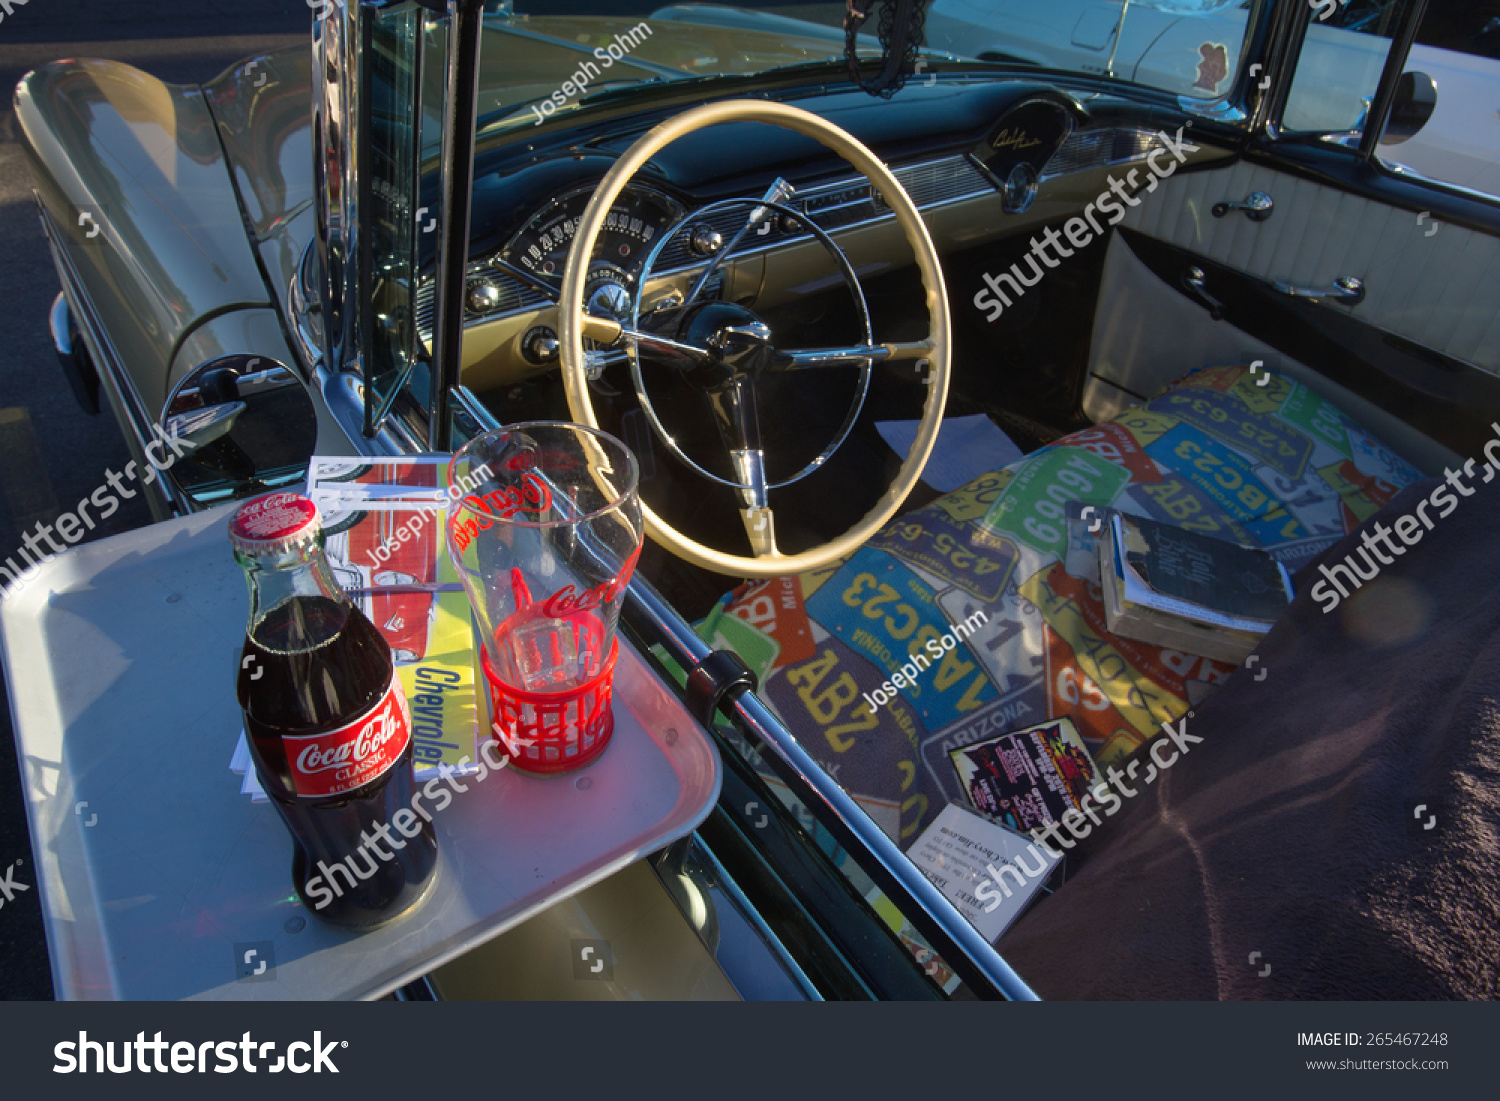 Classic Cars Hot Rods 1950 S Diner Stock Photo (Royalty Free ...